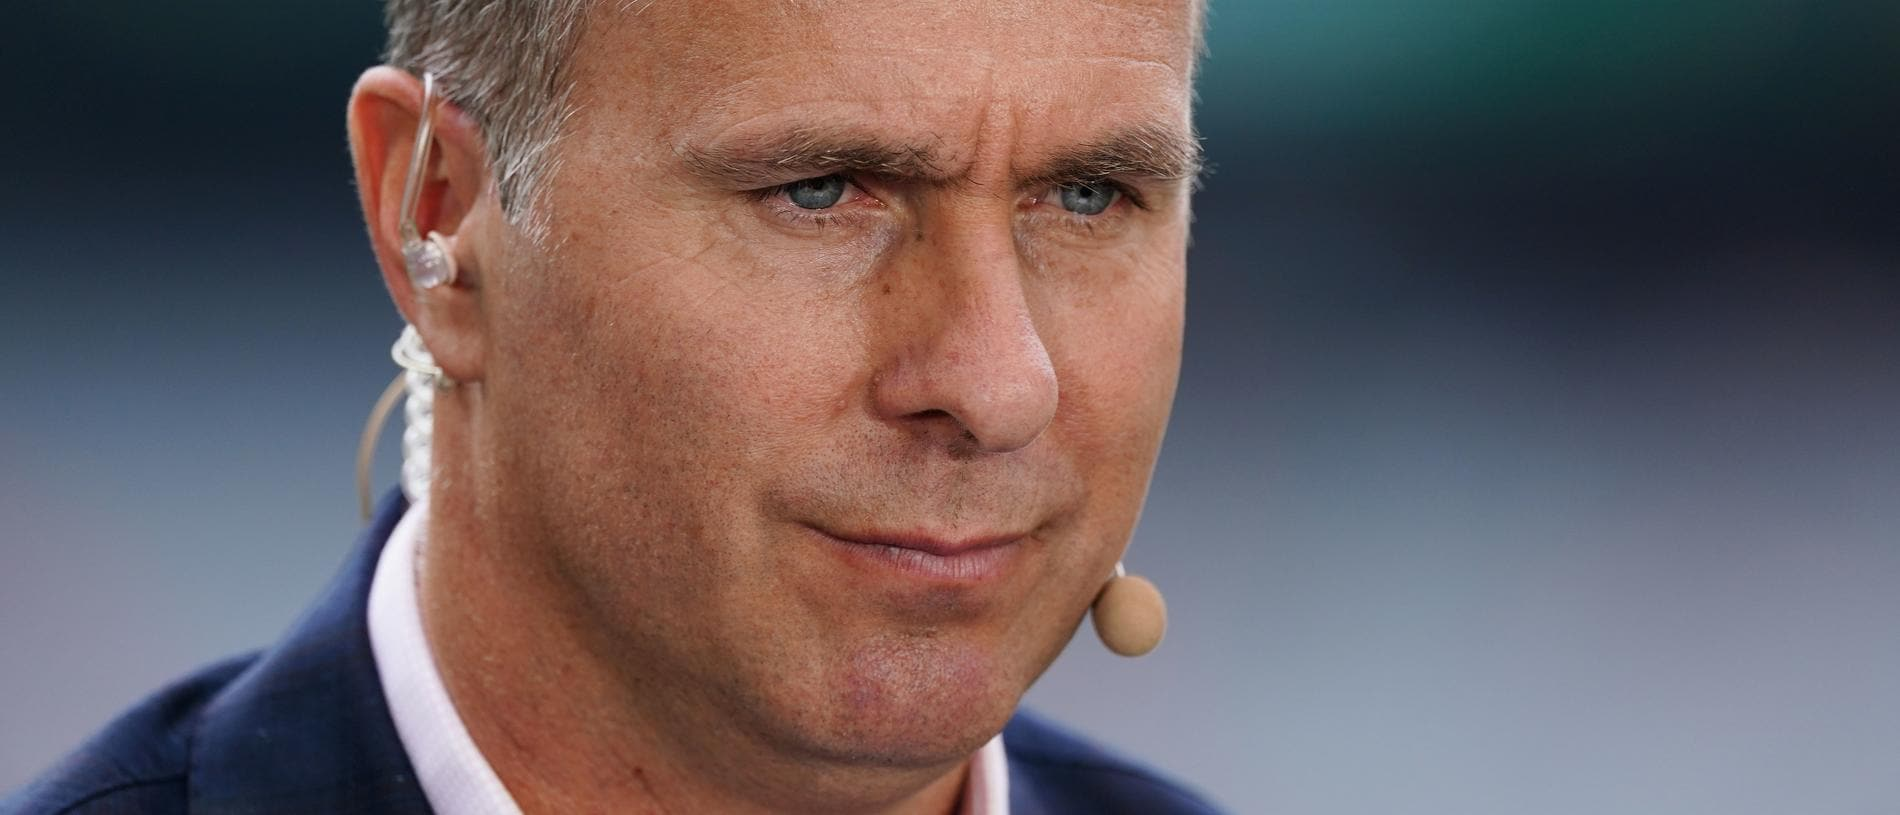 Michael Vaughan looks on on day 3 of the Boxing Day Test match between Australia and New Zealand at the MCG in Melbourne, Saturday, December 28, 2019. (AAP Image/Scott Barbour) NO ARCHIVING, EDITORIAL USE ONLY, IMAGES TO BE USED FOR NEWS REPORTING PURPOSES ONLY, NO COMMERCIAL USE WHATSOEVER, NO USE IN BOOKS WITHOUT PRIOR WRITTEN CONSENT FROM AAP